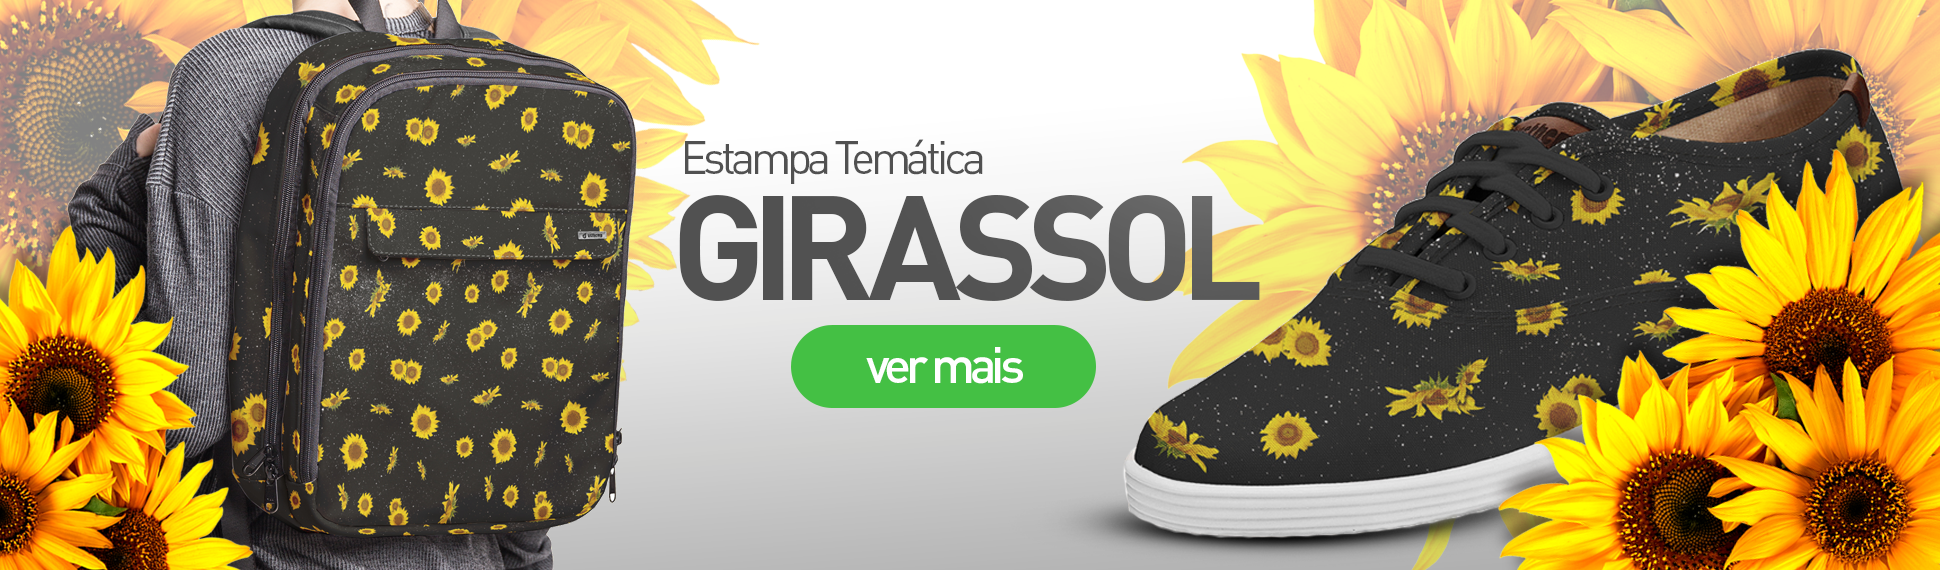 Estampa Flowers - Girassol